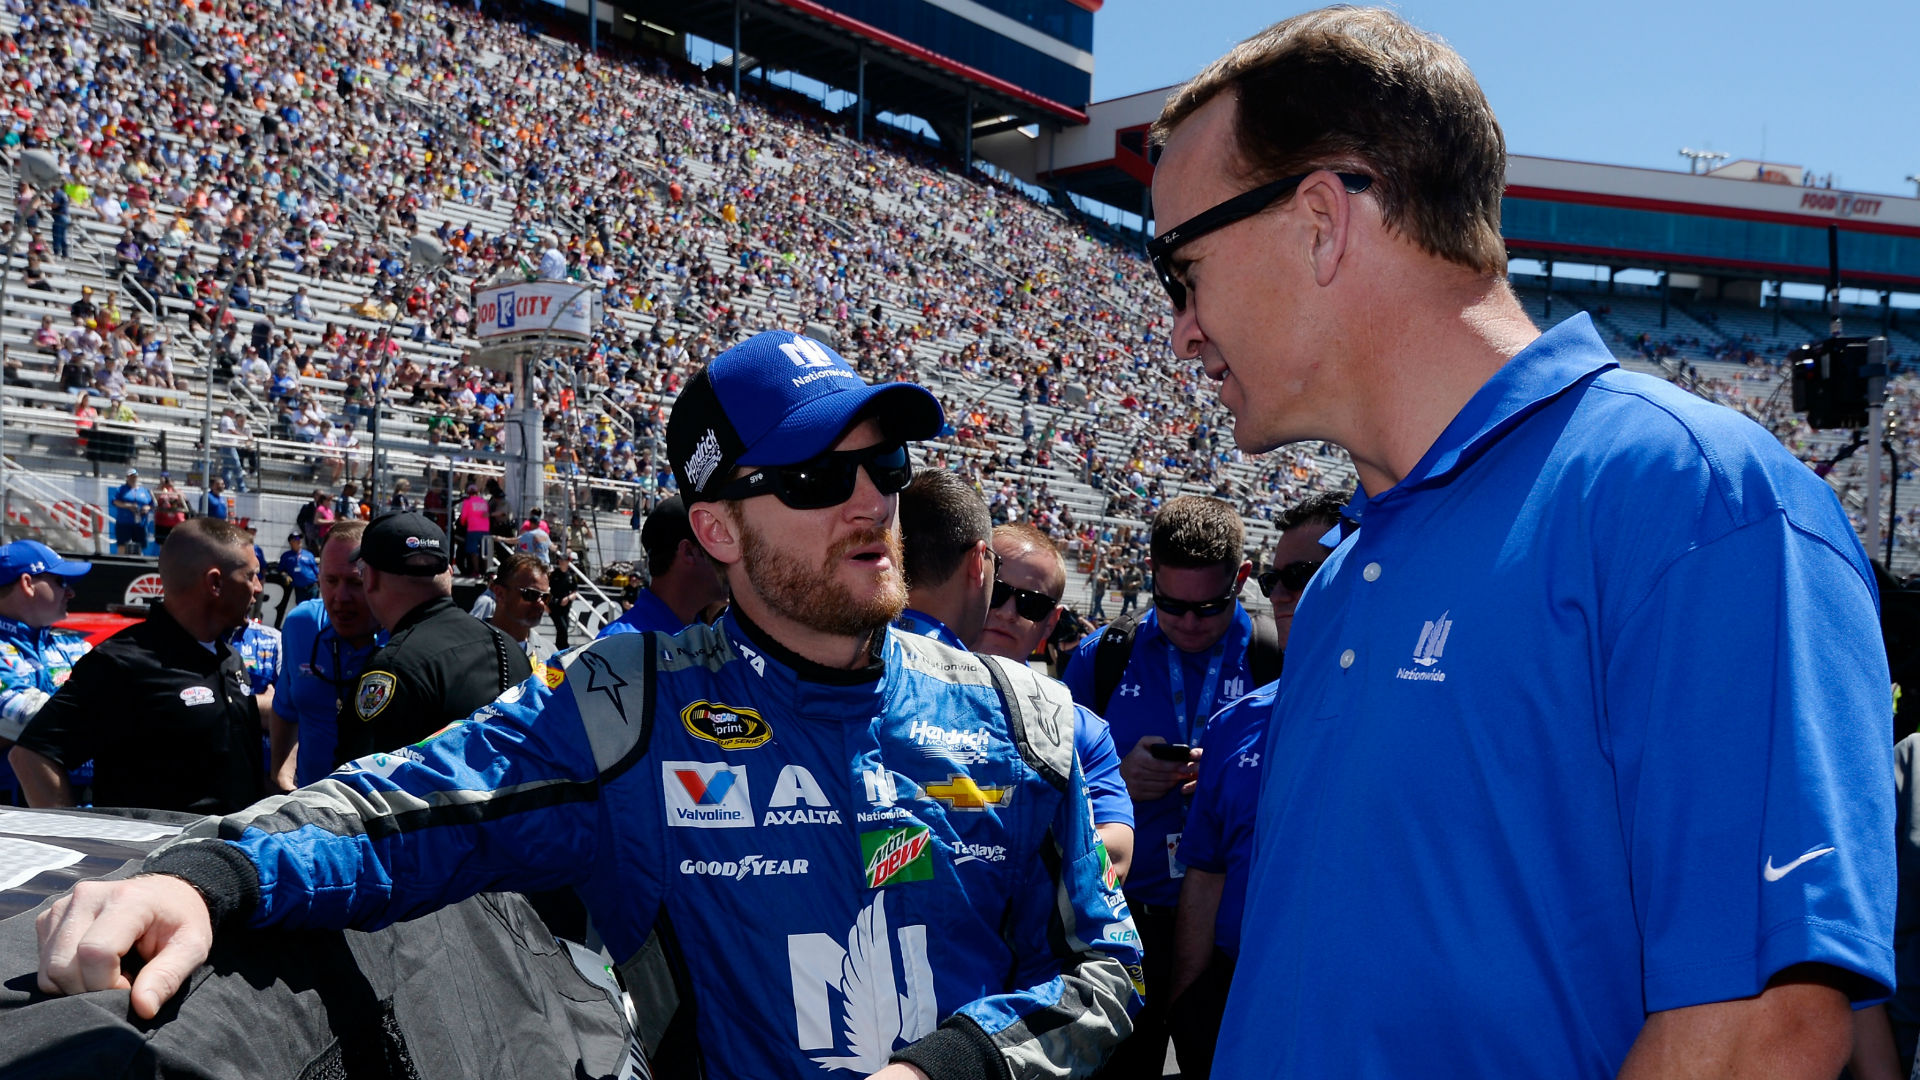 Dale Earnhardt Jr. to join NBC broadcast team after season